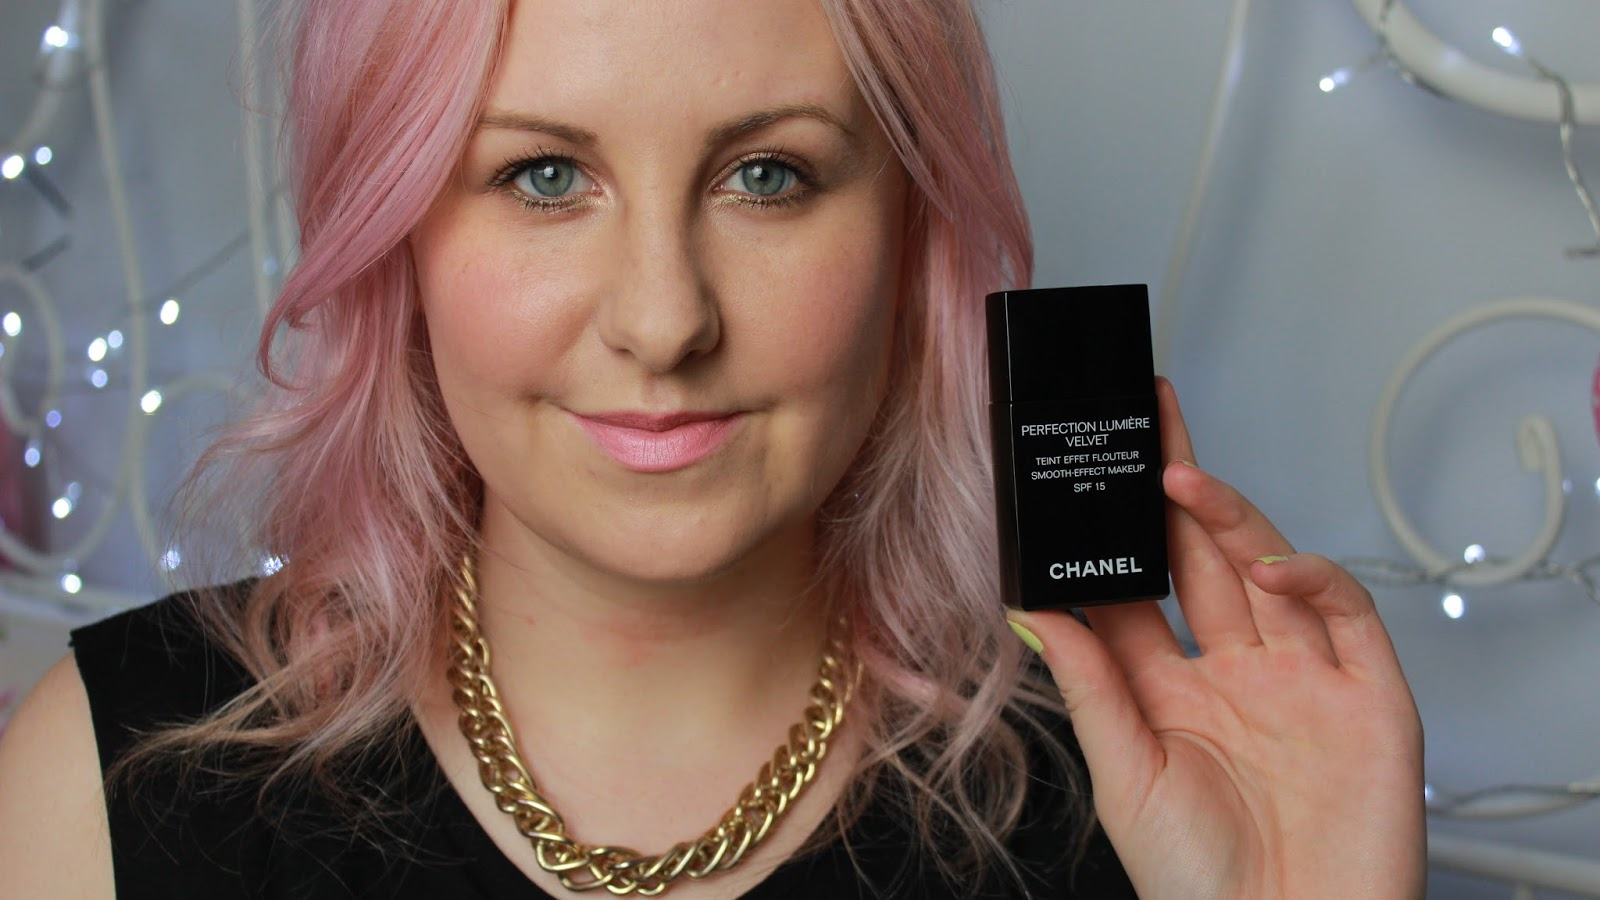 Chanel Perfection Lumiere Velvet mifashop.net